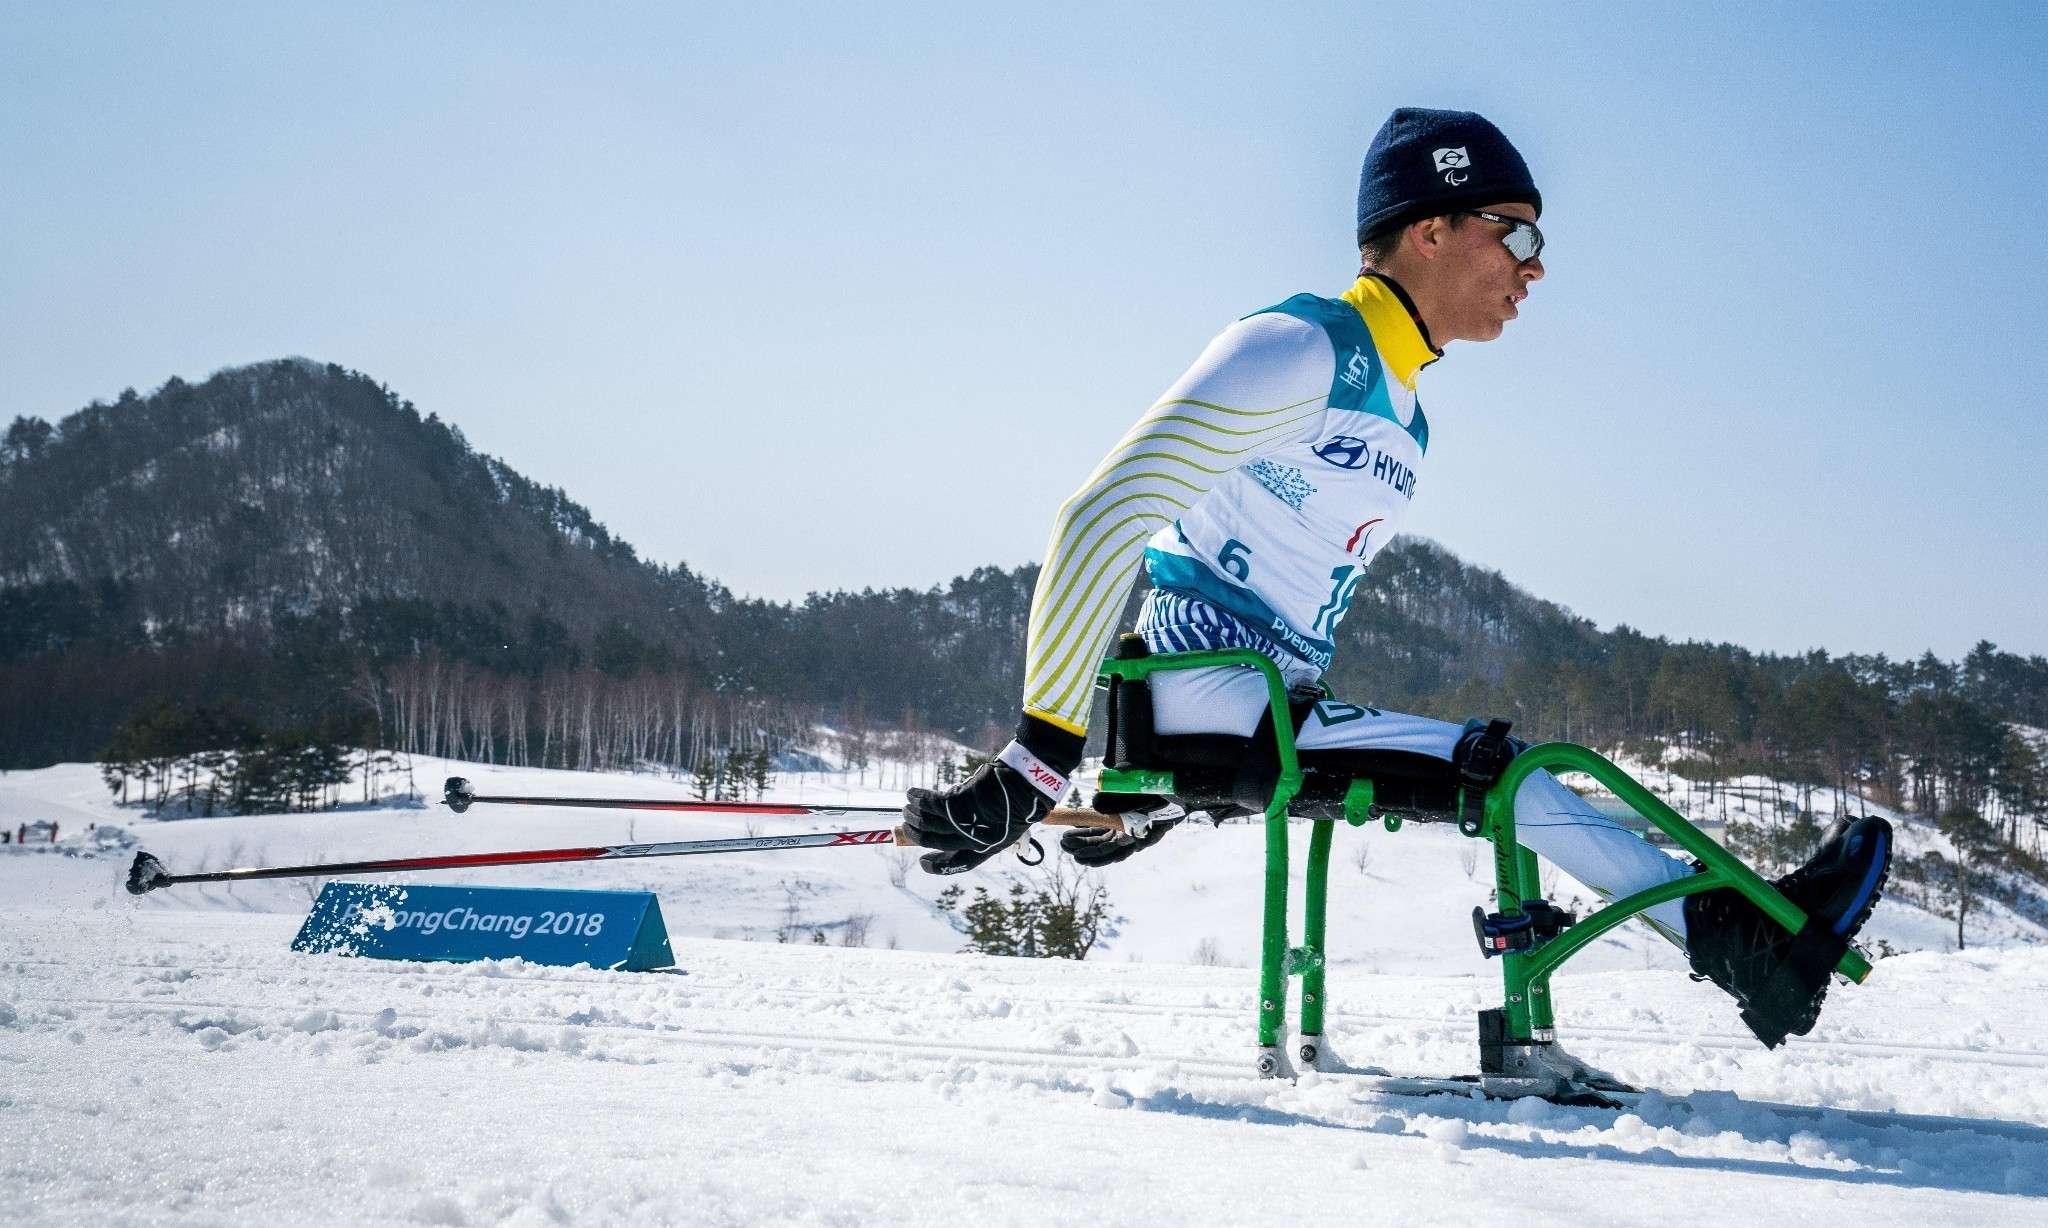 He only sees snow once a year: meet the youngest Winter Paralympian